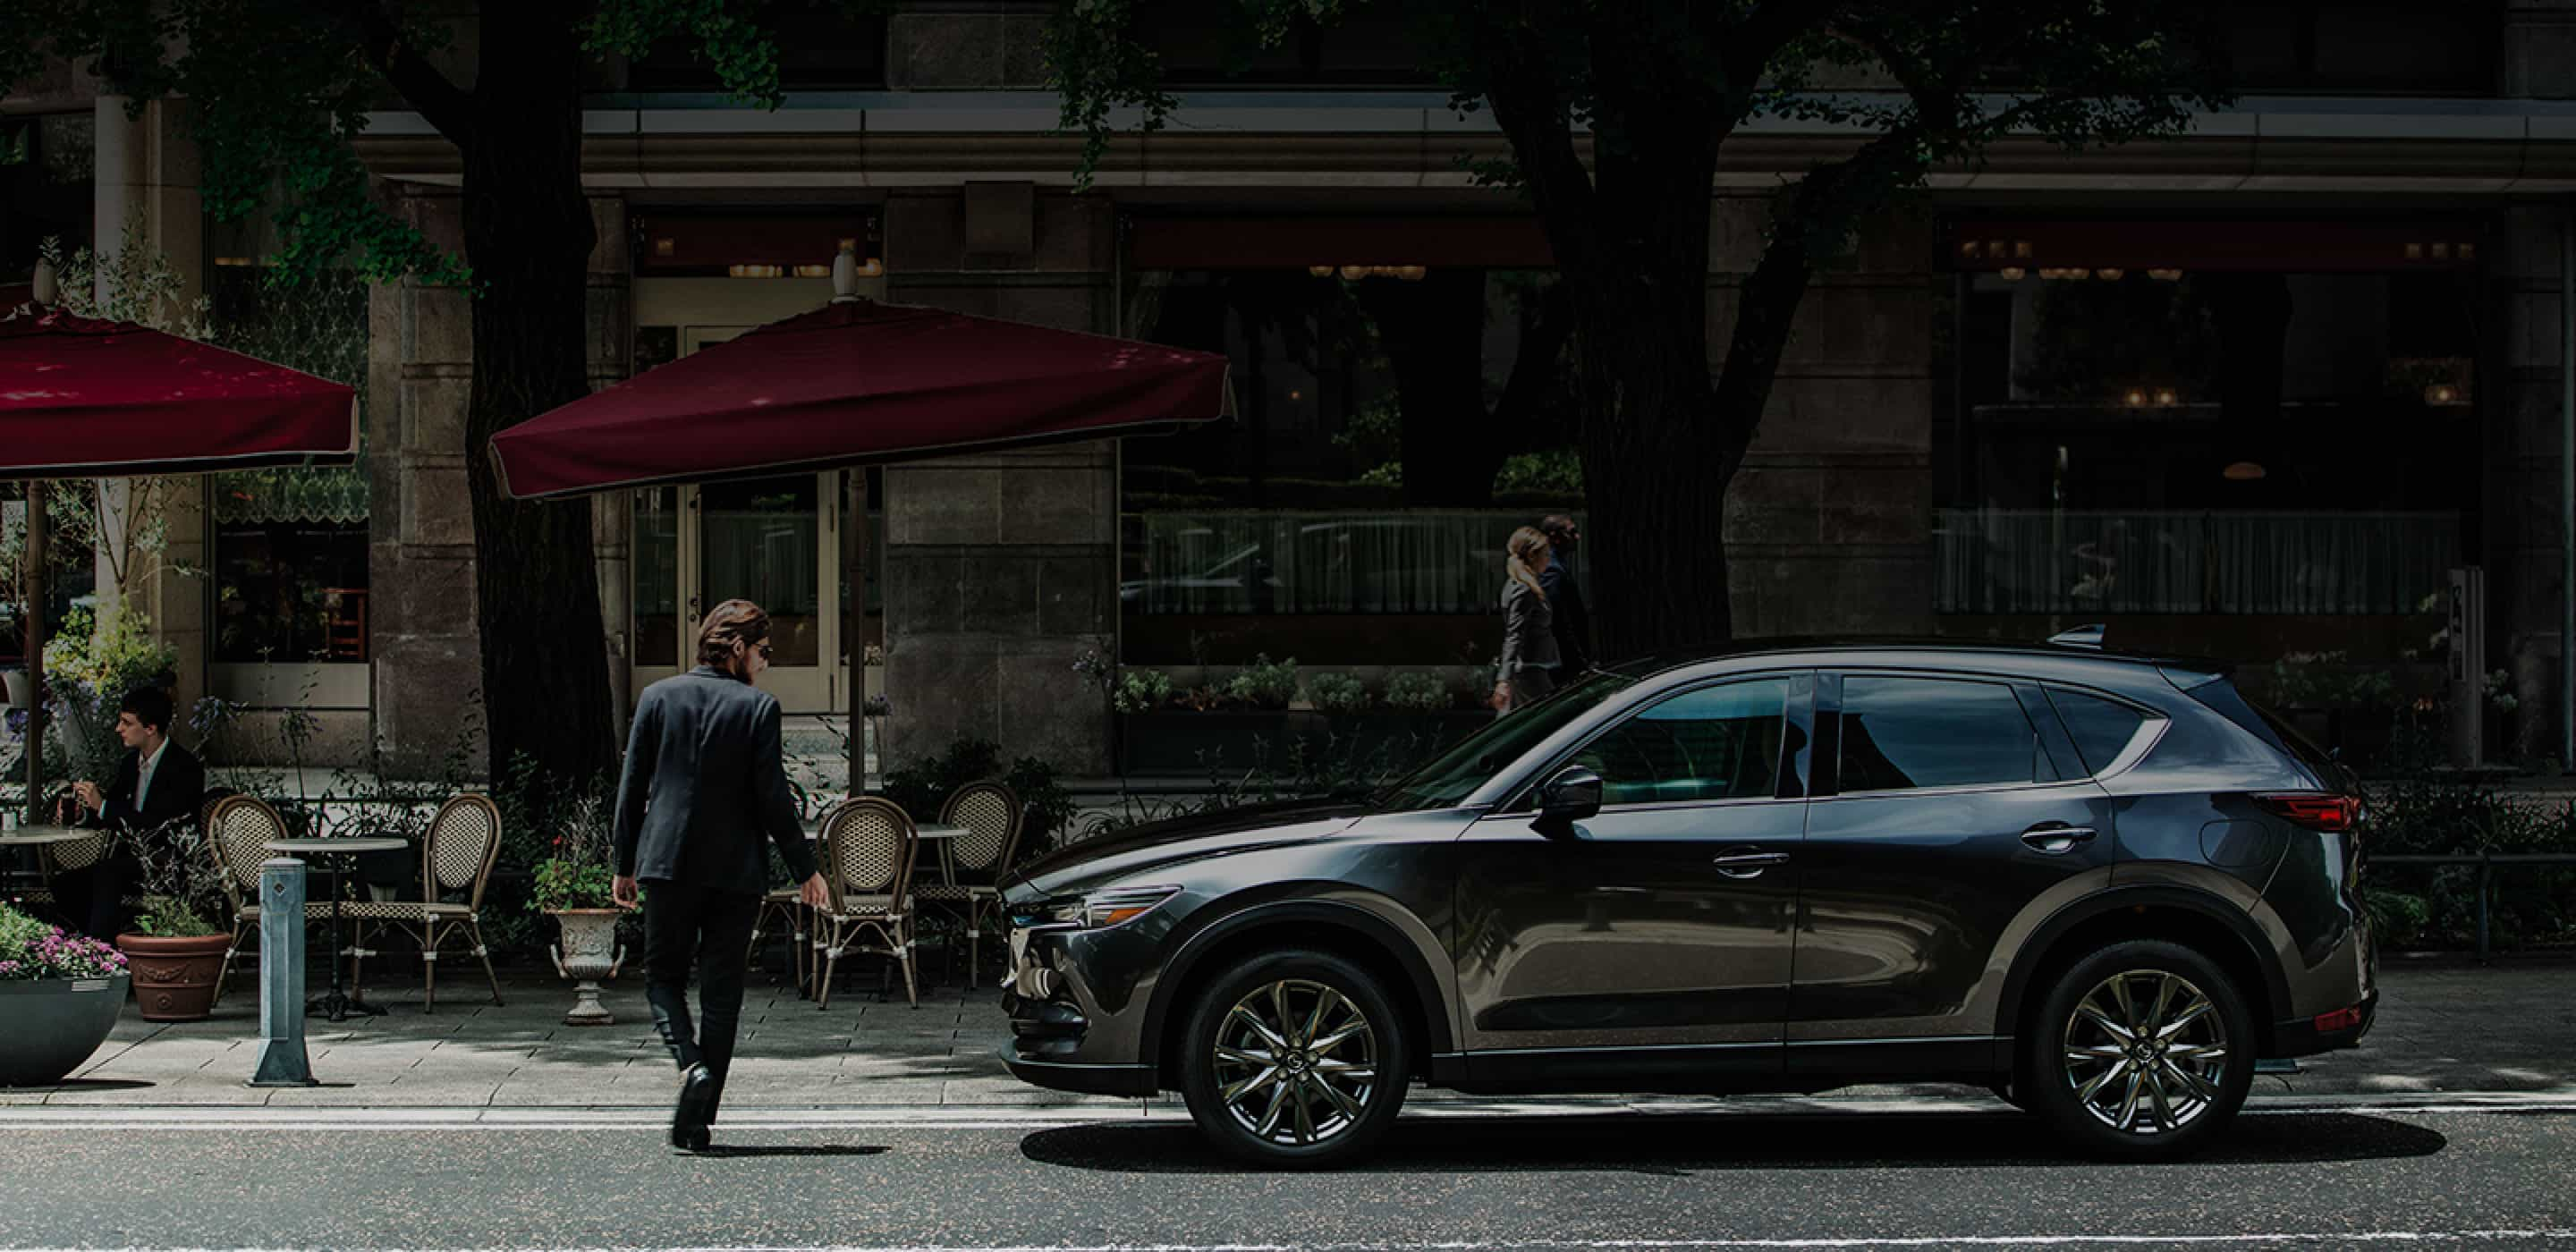 2020 CX-5, The Most Powerful CX-5 Ever<sup>1</sup>